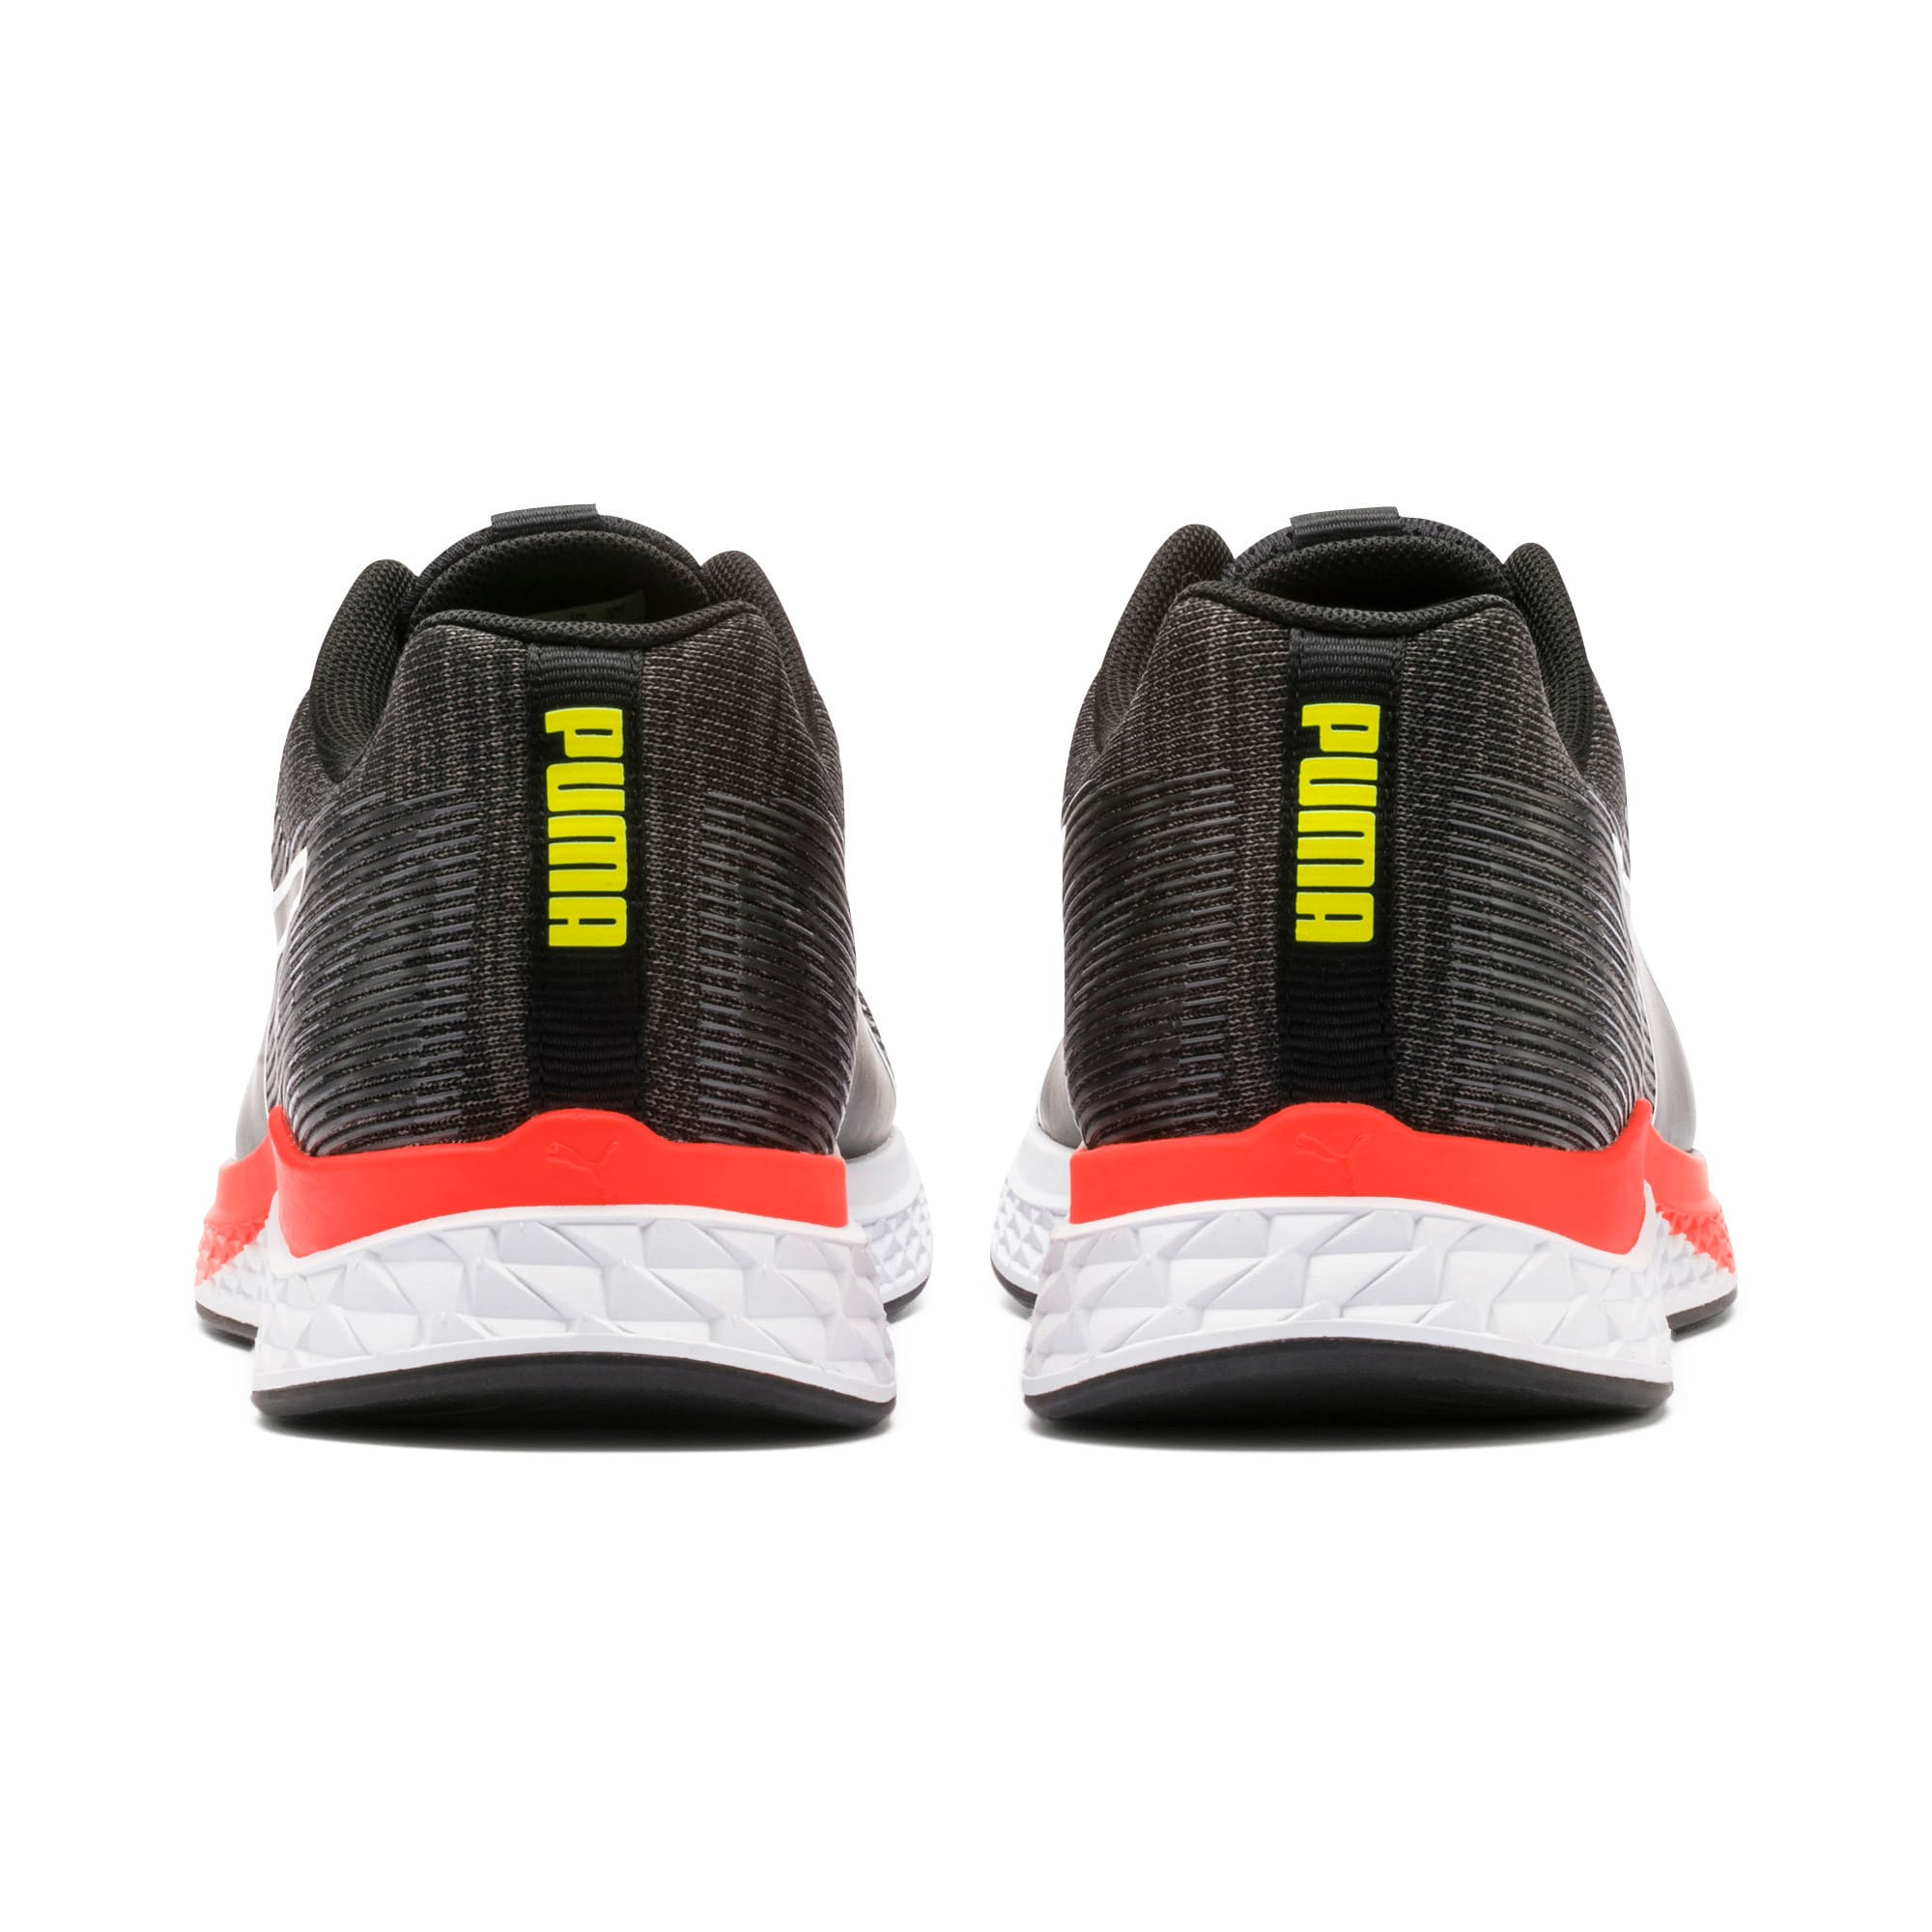 Thumbnail 4 of SPEED SUTAMINA Running Shoes, Black-CASTLEROCK-Yellow-Red, medium